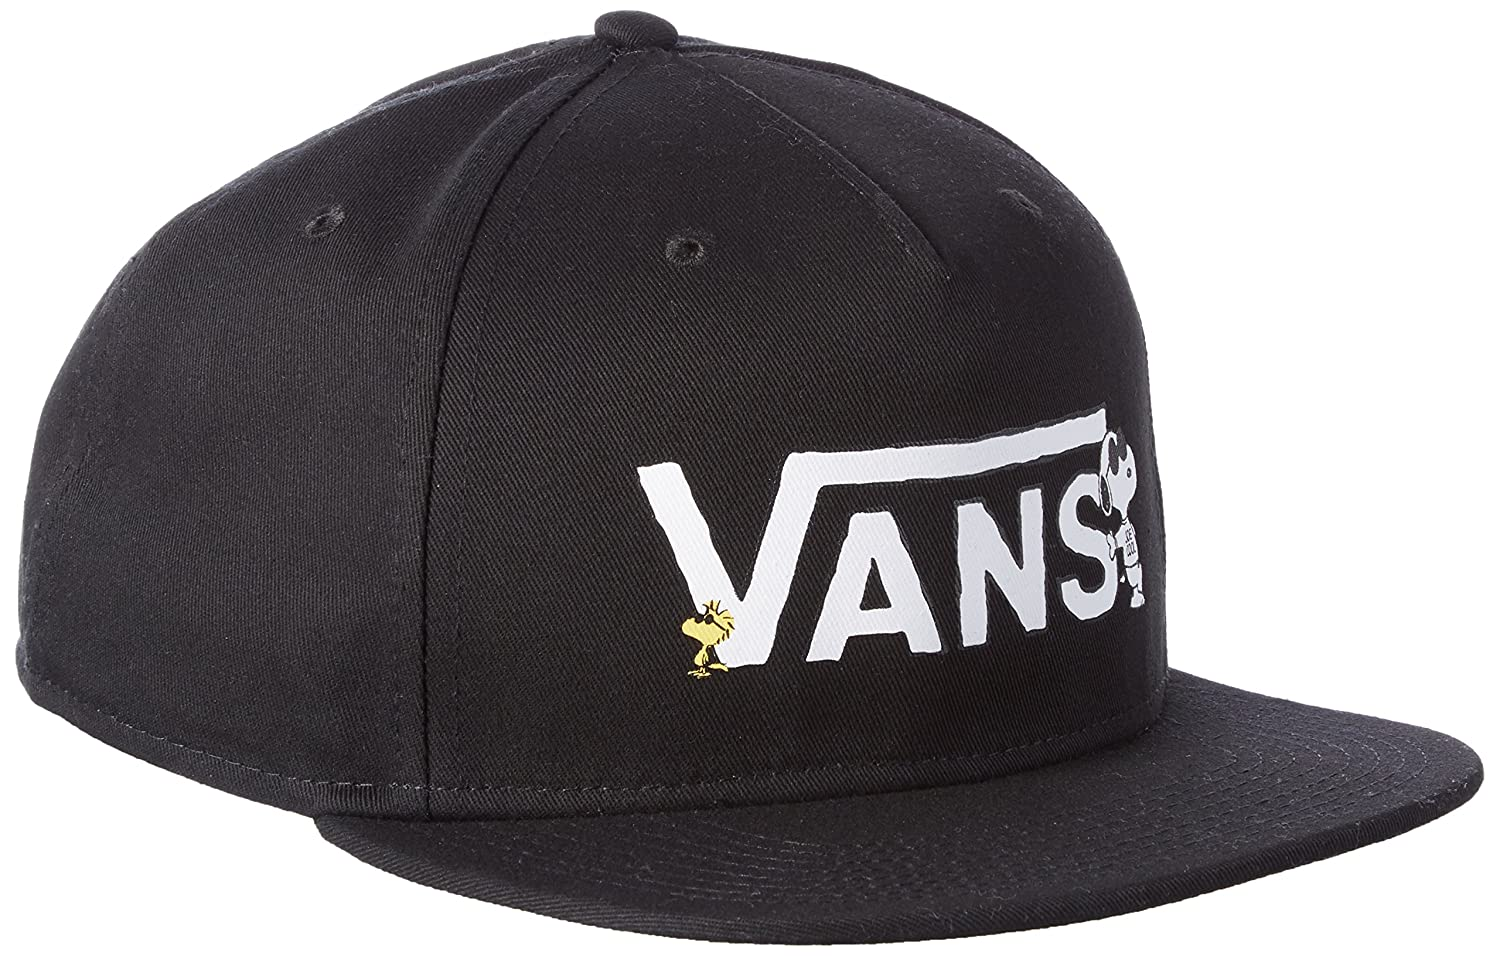 541d7865 Vans X PEANUTS SN Hat - Peanuts: Amazon.in: Clothing & Accessories